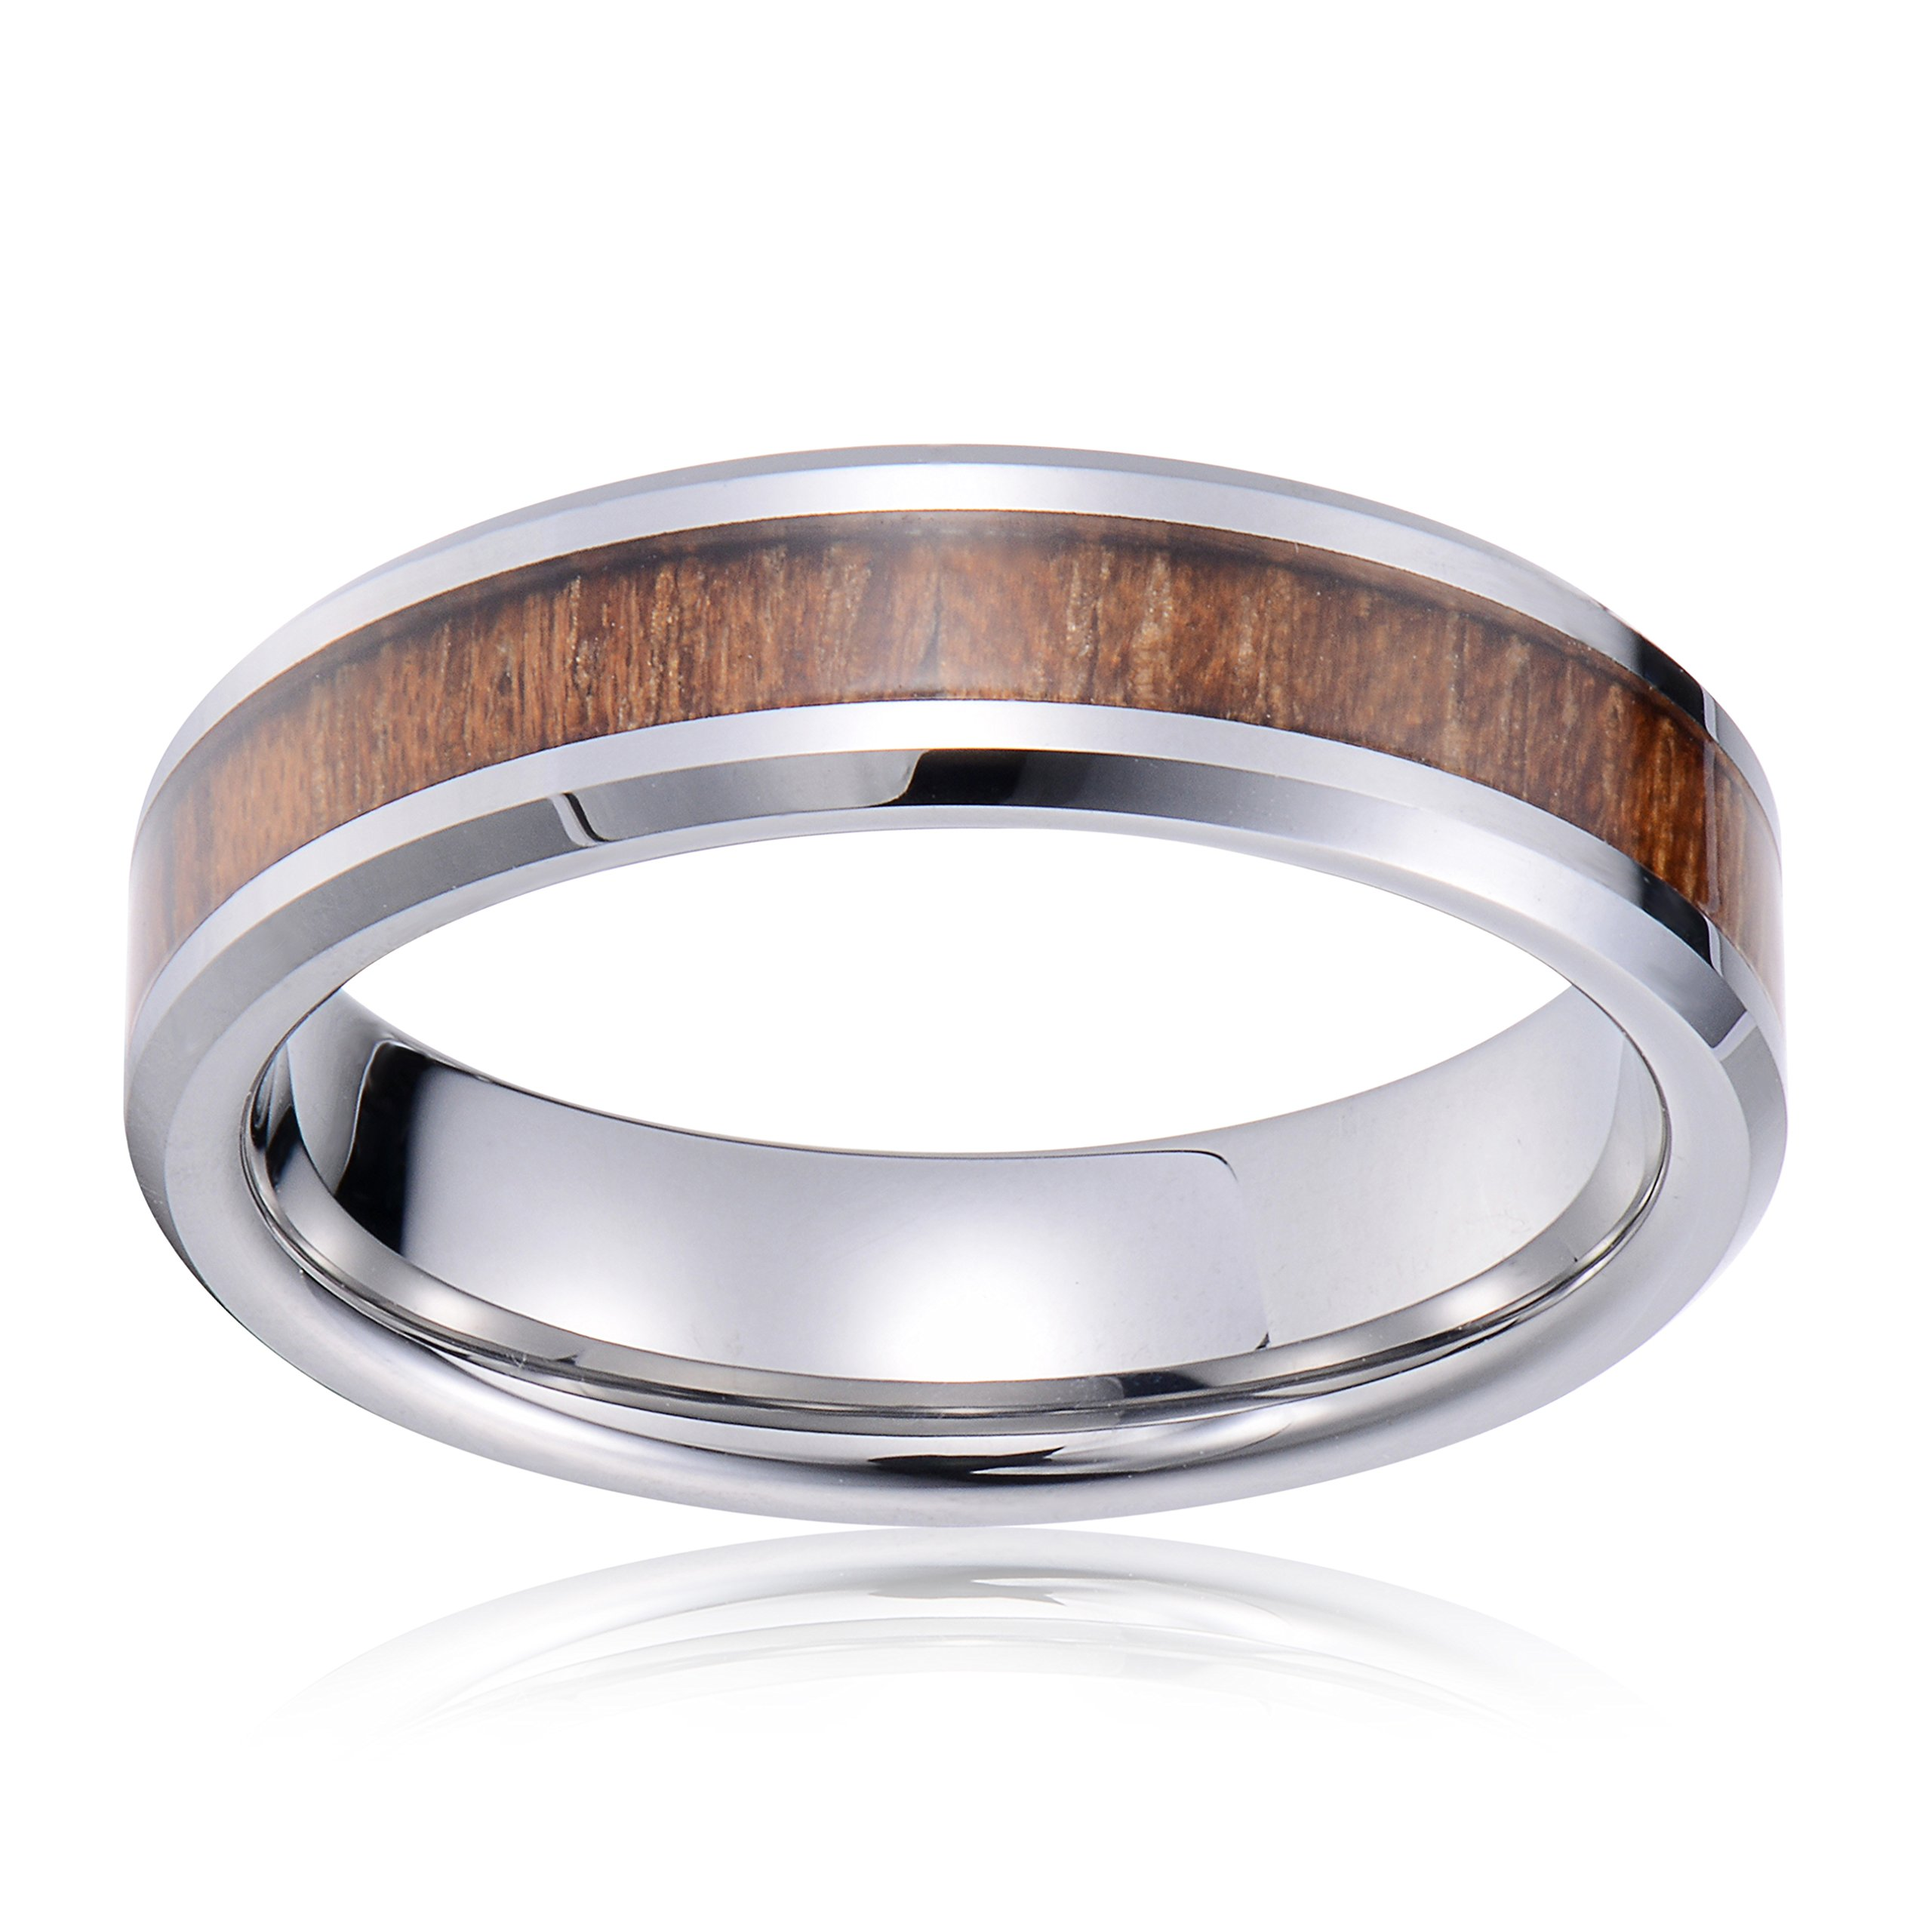 Tiitc Wedding Band Ring Tungsten Carbide Ring Real Koa Wood Inlay Beveled High Polisfed Edge Comfort Fit 6mm (10.5) by tiitc (Image #2)